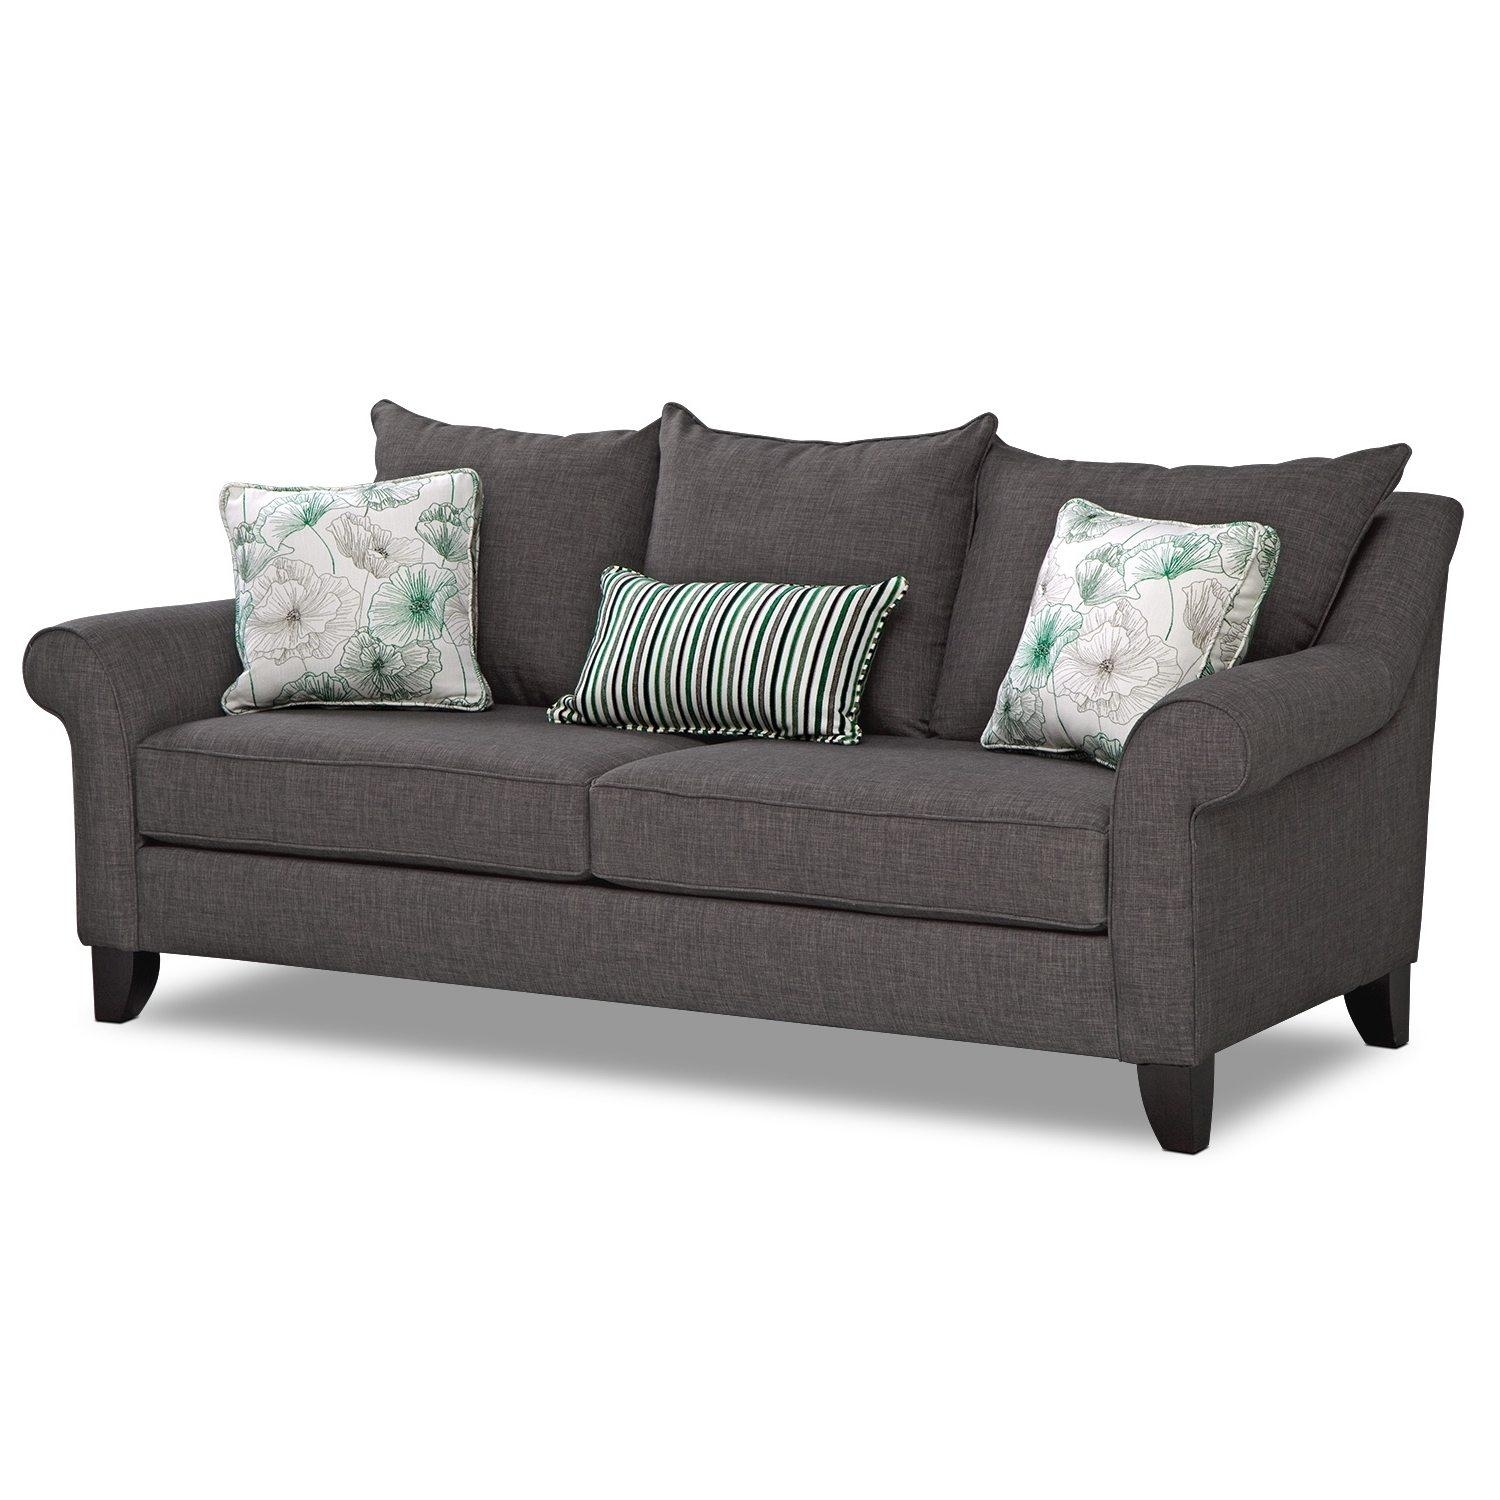 Sealy Sleeper Sofa With Design Hd Gallery 20374 | Kengire Pertaining To Sealy Sofas (Image 14 of 20)